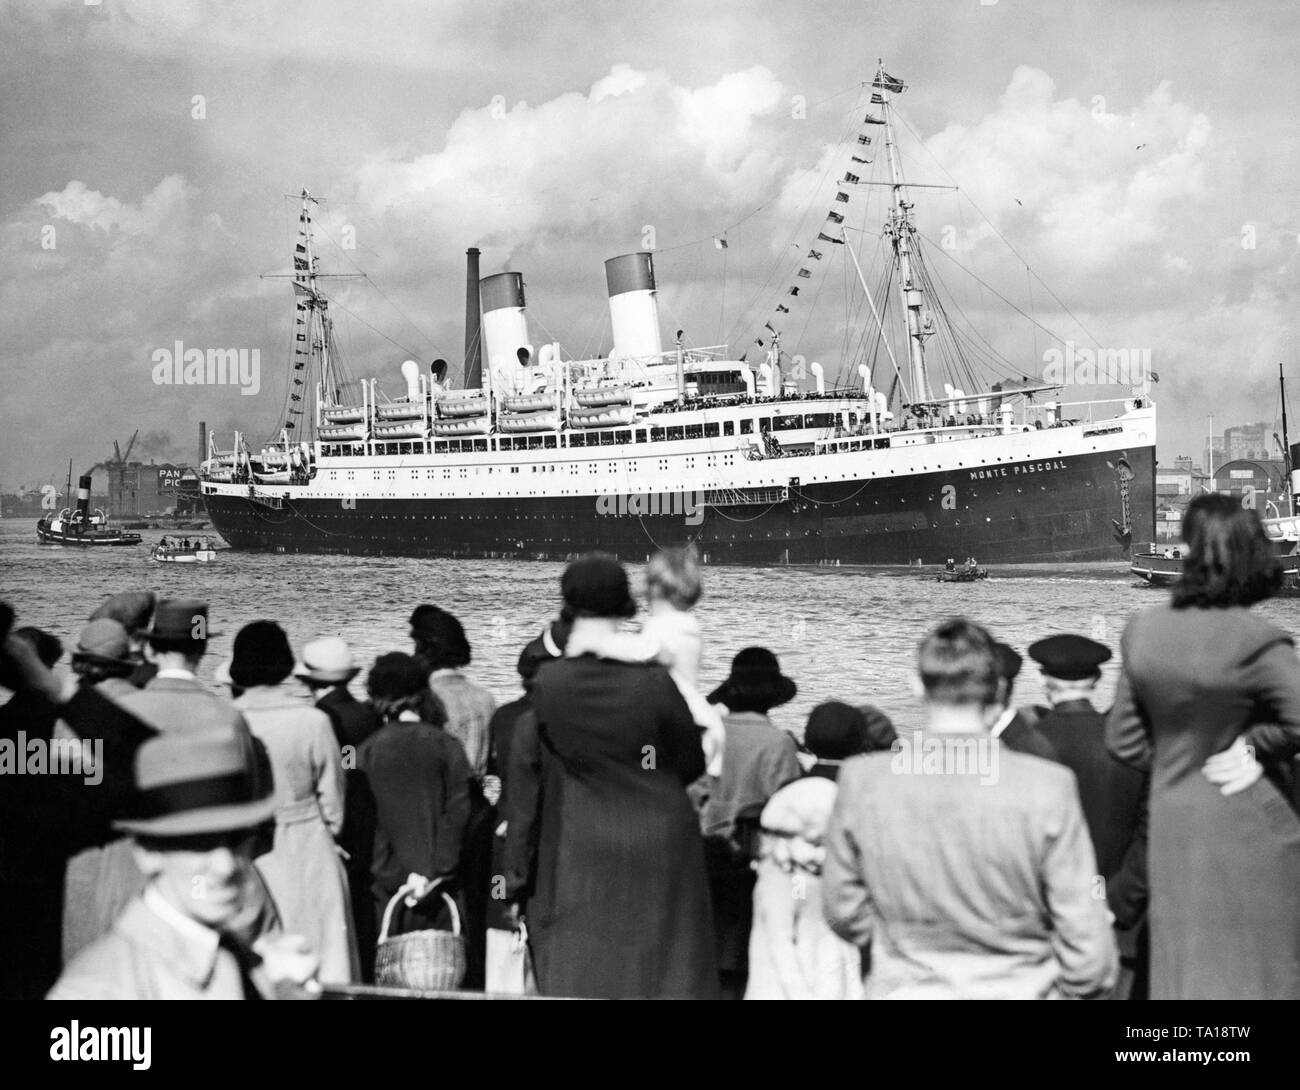 800 German veterans reach the port of Greenwich aboard the passenger steamship 'Monte Pascoal' of the shipping company Hamburg Sued, where they were received by the Duke of Saxe-Coburg-Gotha. - Stock Image